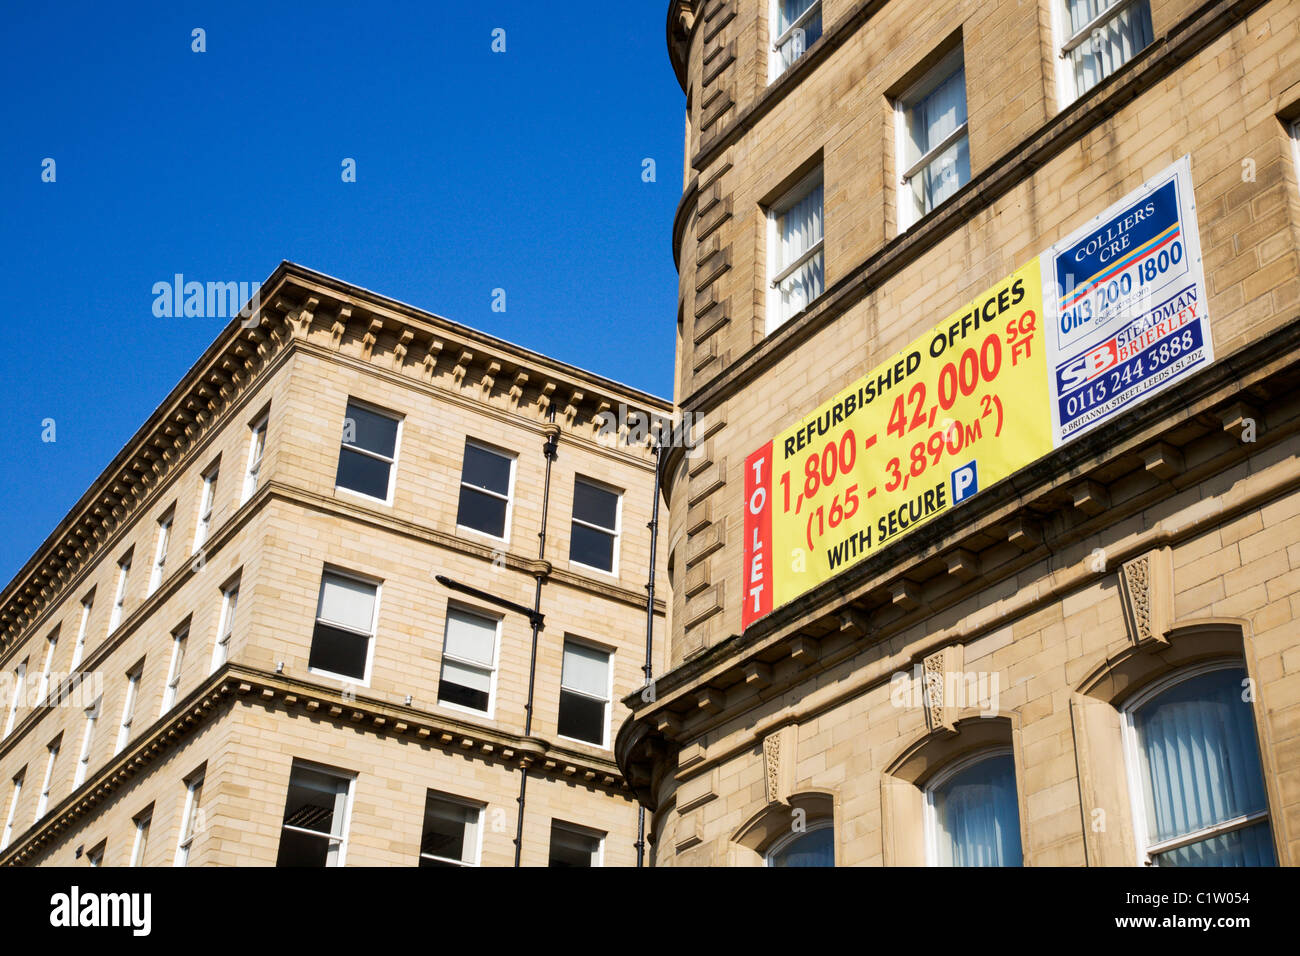 Refurbished Offices To Let Sign on Well Street Bradford West Yorkshire England - Stock Image